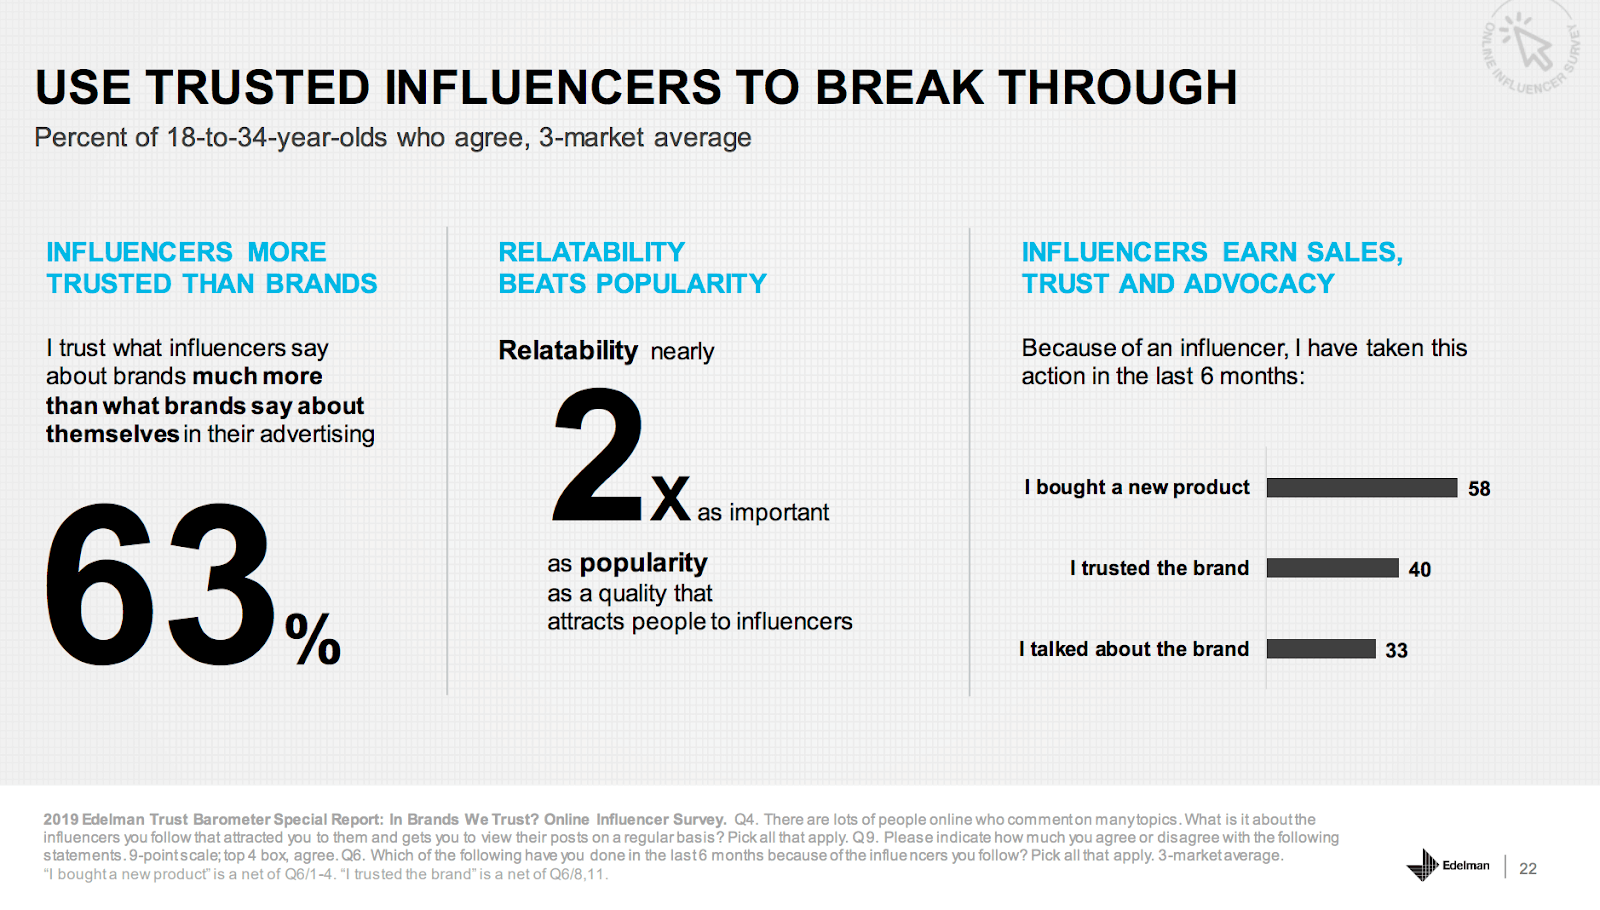 Stats for influencer assisted conversions